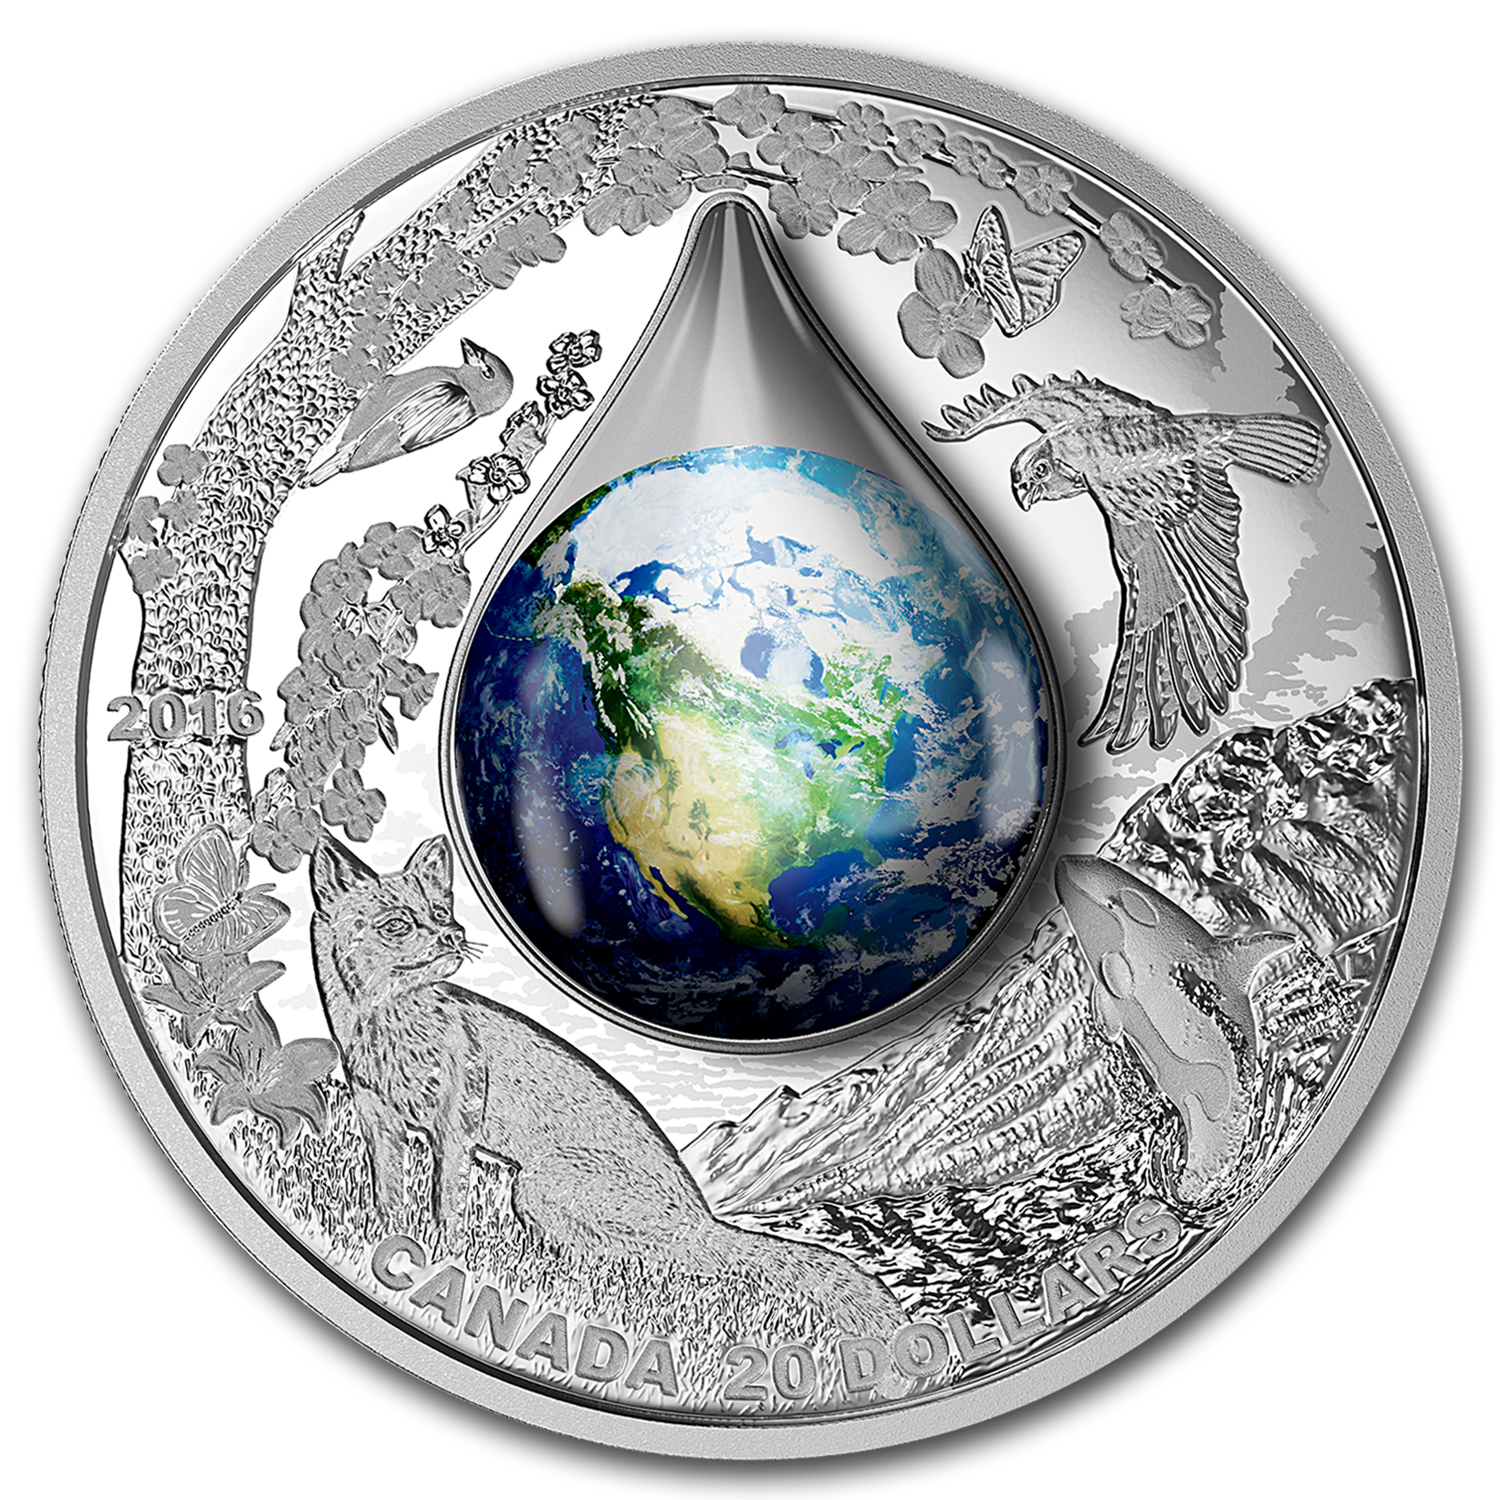 2016 Canada 1 oz Silver $20 Proof Mother Earth